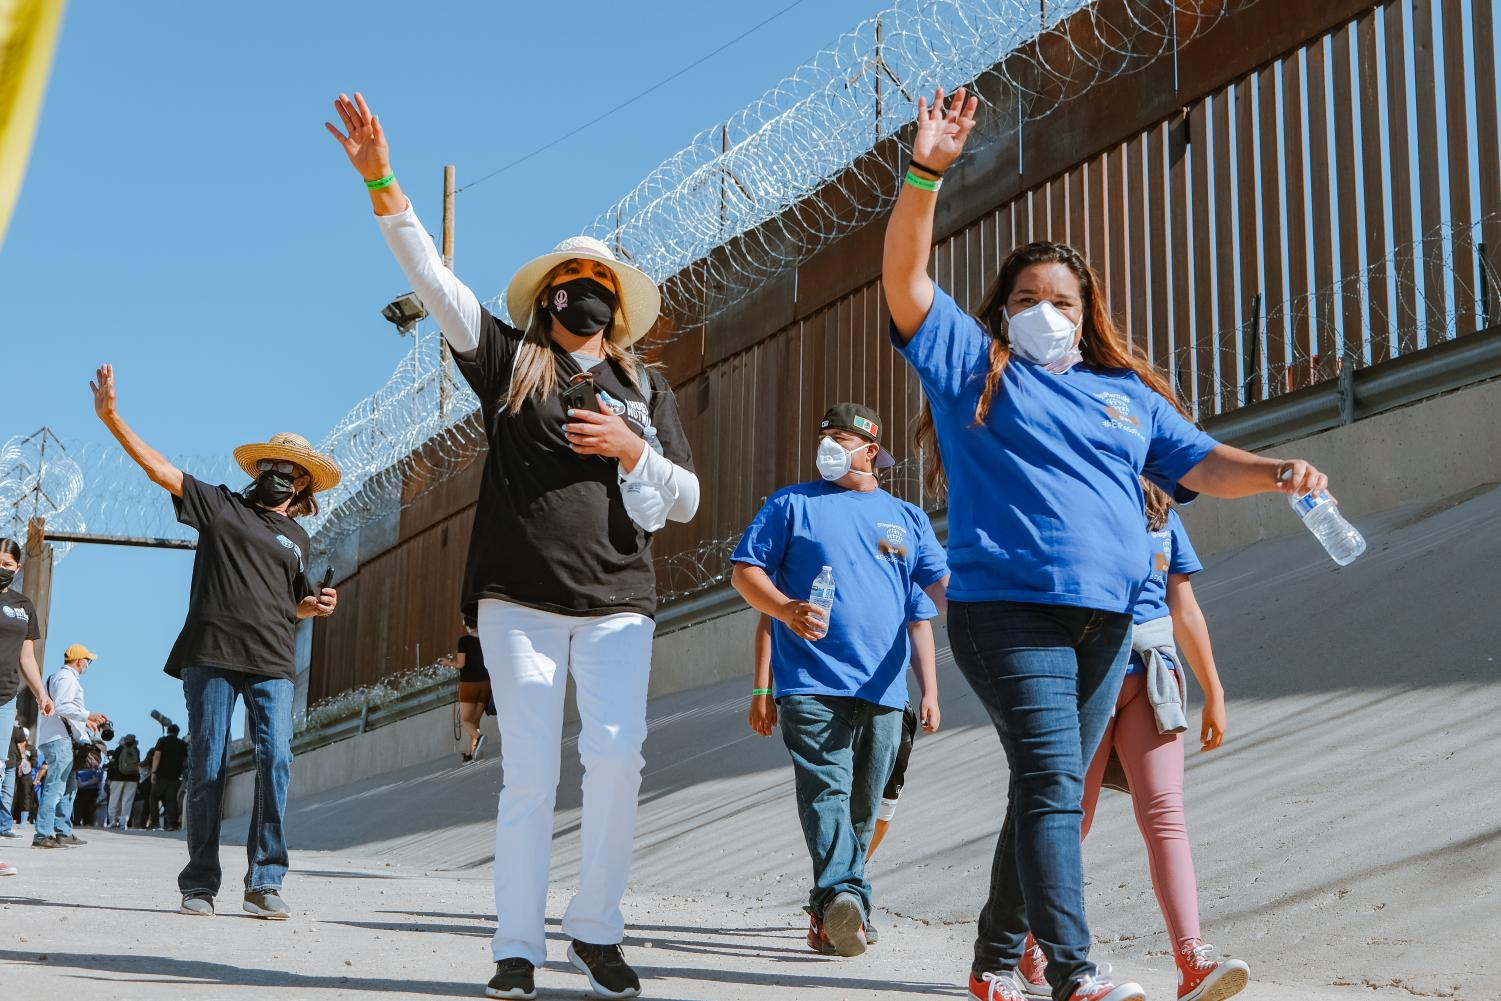 Families+separated+by+U.S.-Mexican+border+reunite+for+three+minutes+at+%E2%80%98Hugs%2C+Not+Walls%E2%80%99